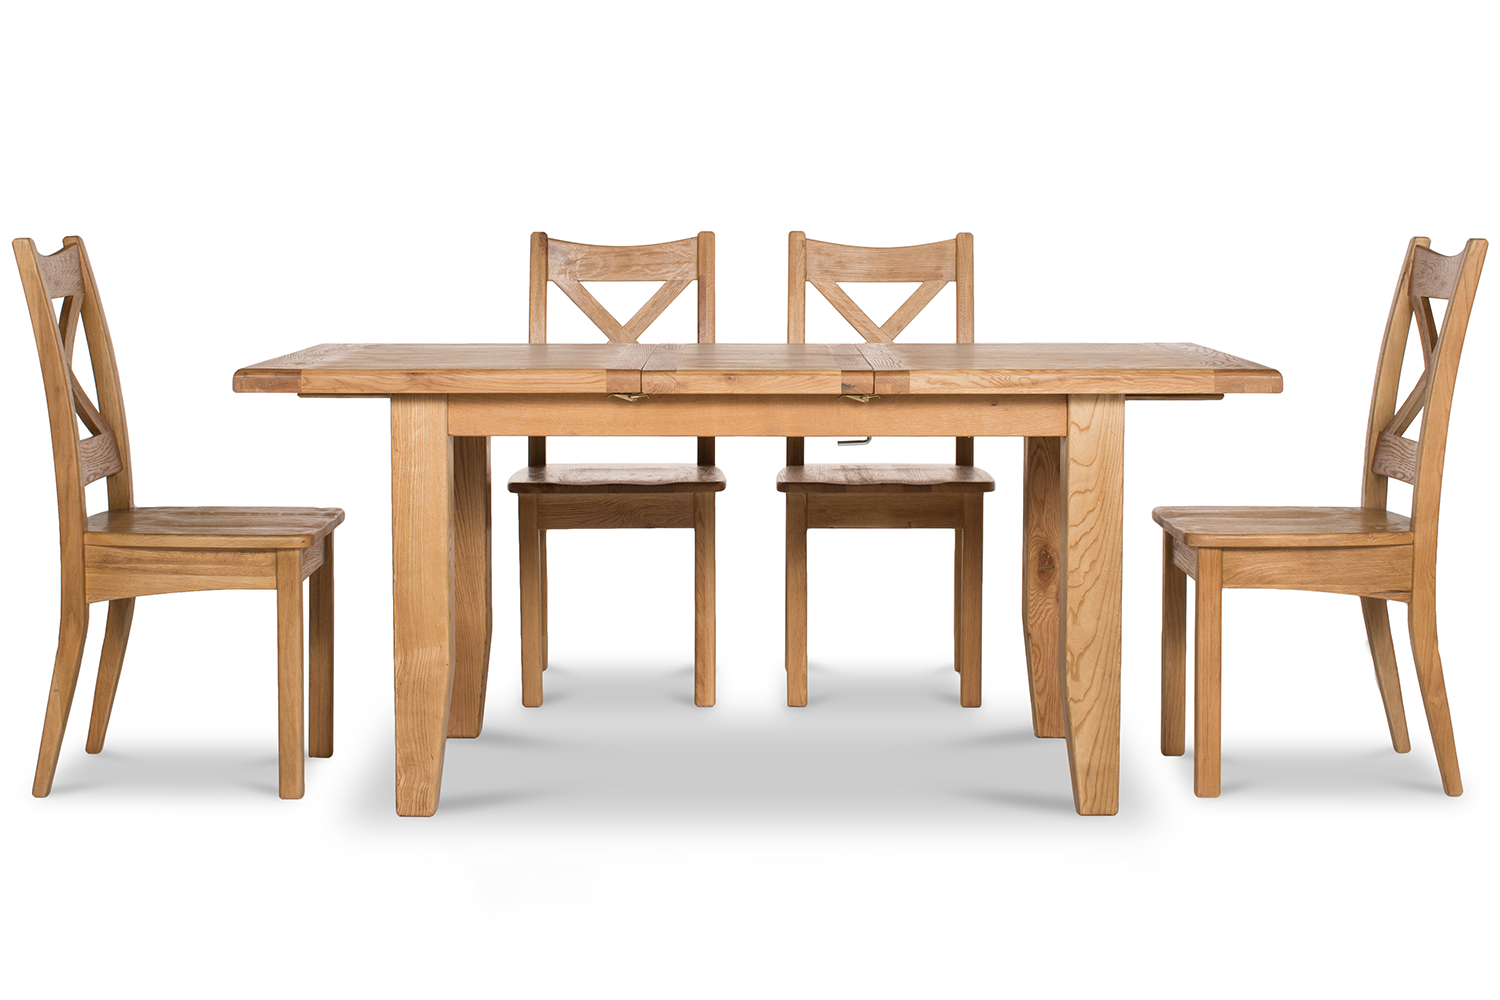 Tisbury 140 5-Piece Set Natural